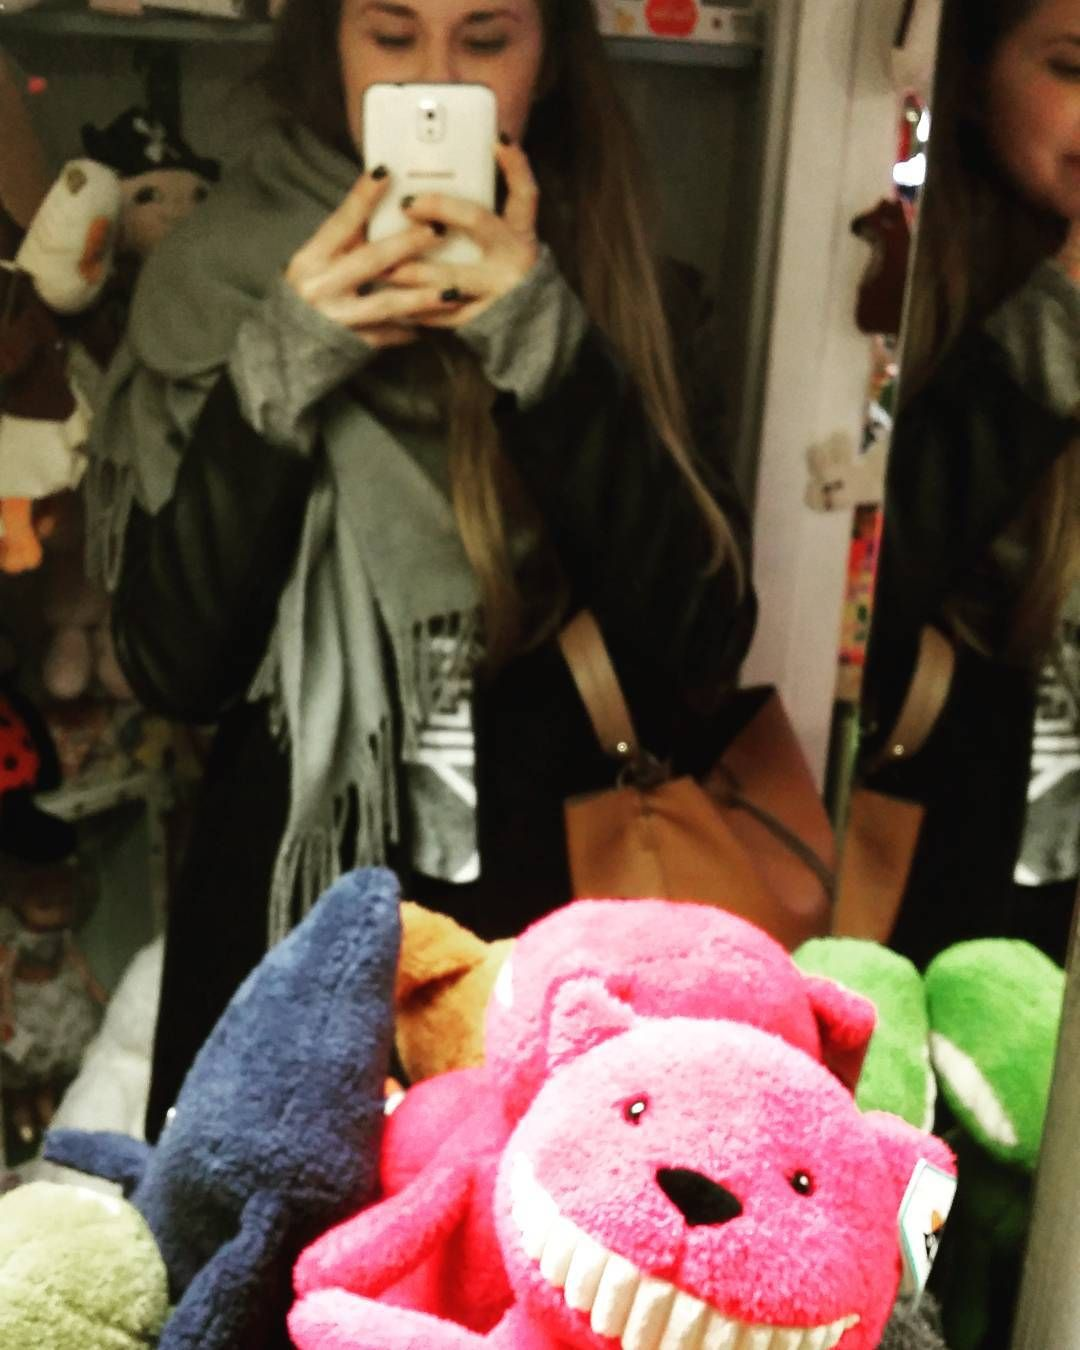 Bearrr monsta  #bear #yarrr #awesomesetof #teeth #monsta #pink #stuffedanimal #cuteshop in #jyväskylä #mirrorme by sasa.airio